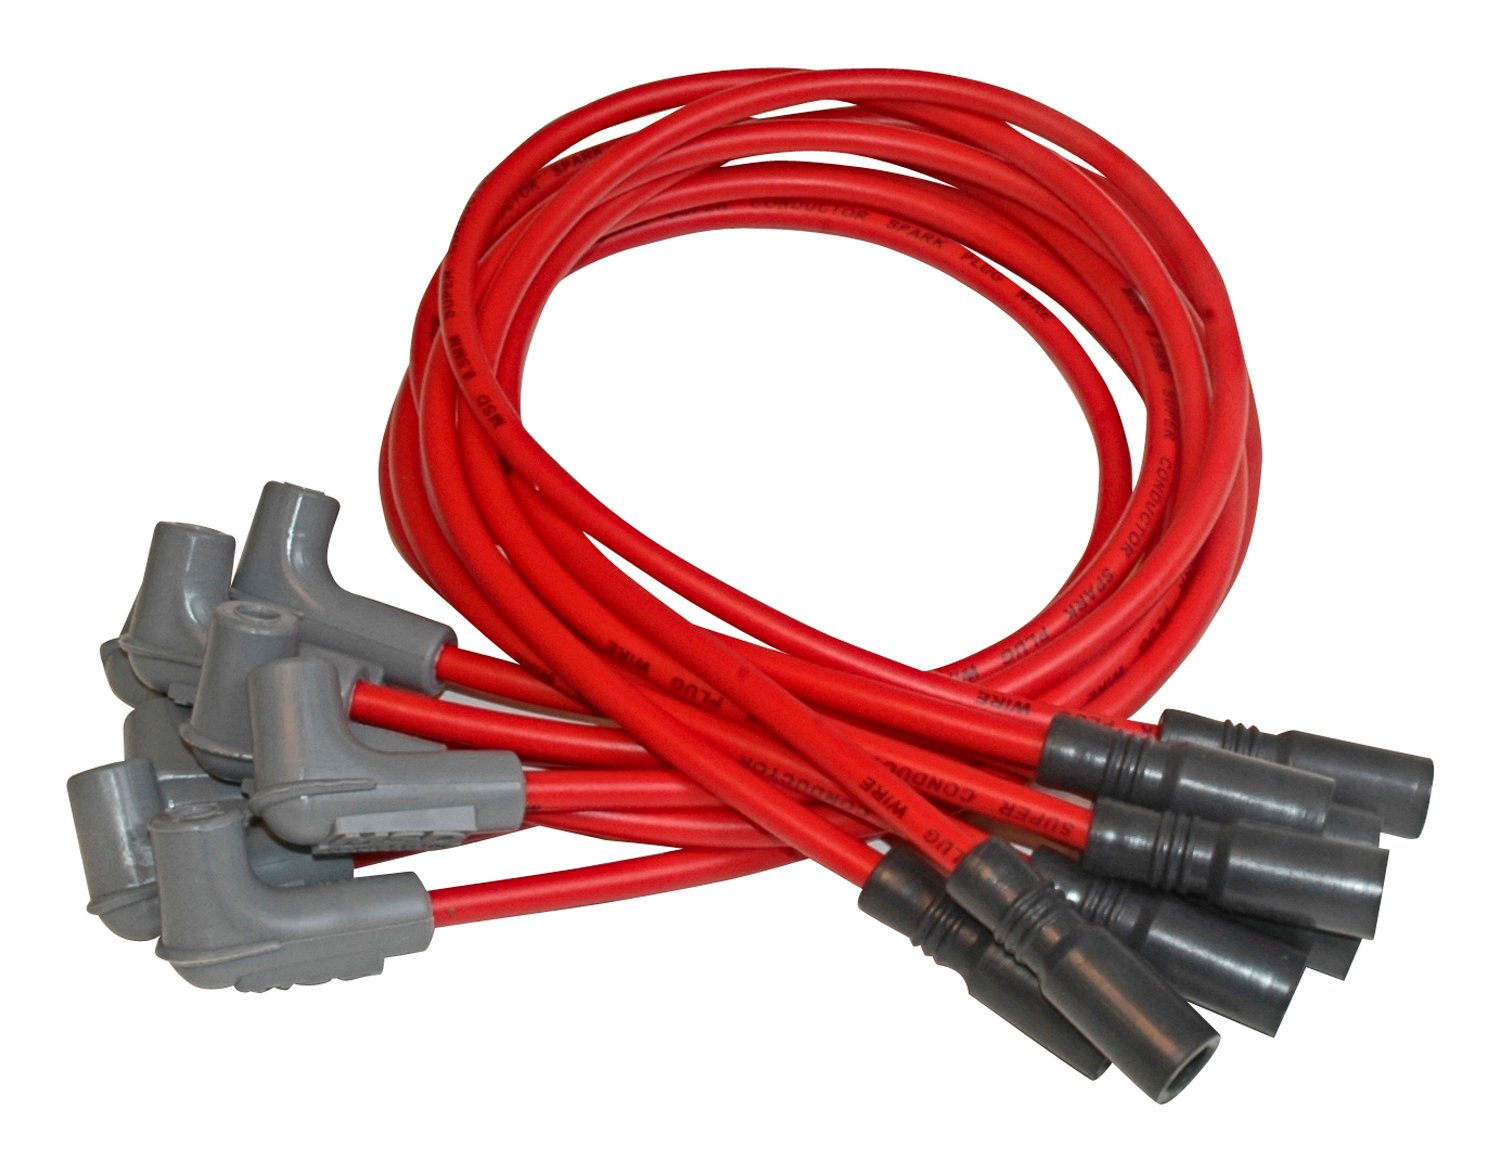 Super Conductor Spark Plug Wire Set, LT1 Camaro '93-'96